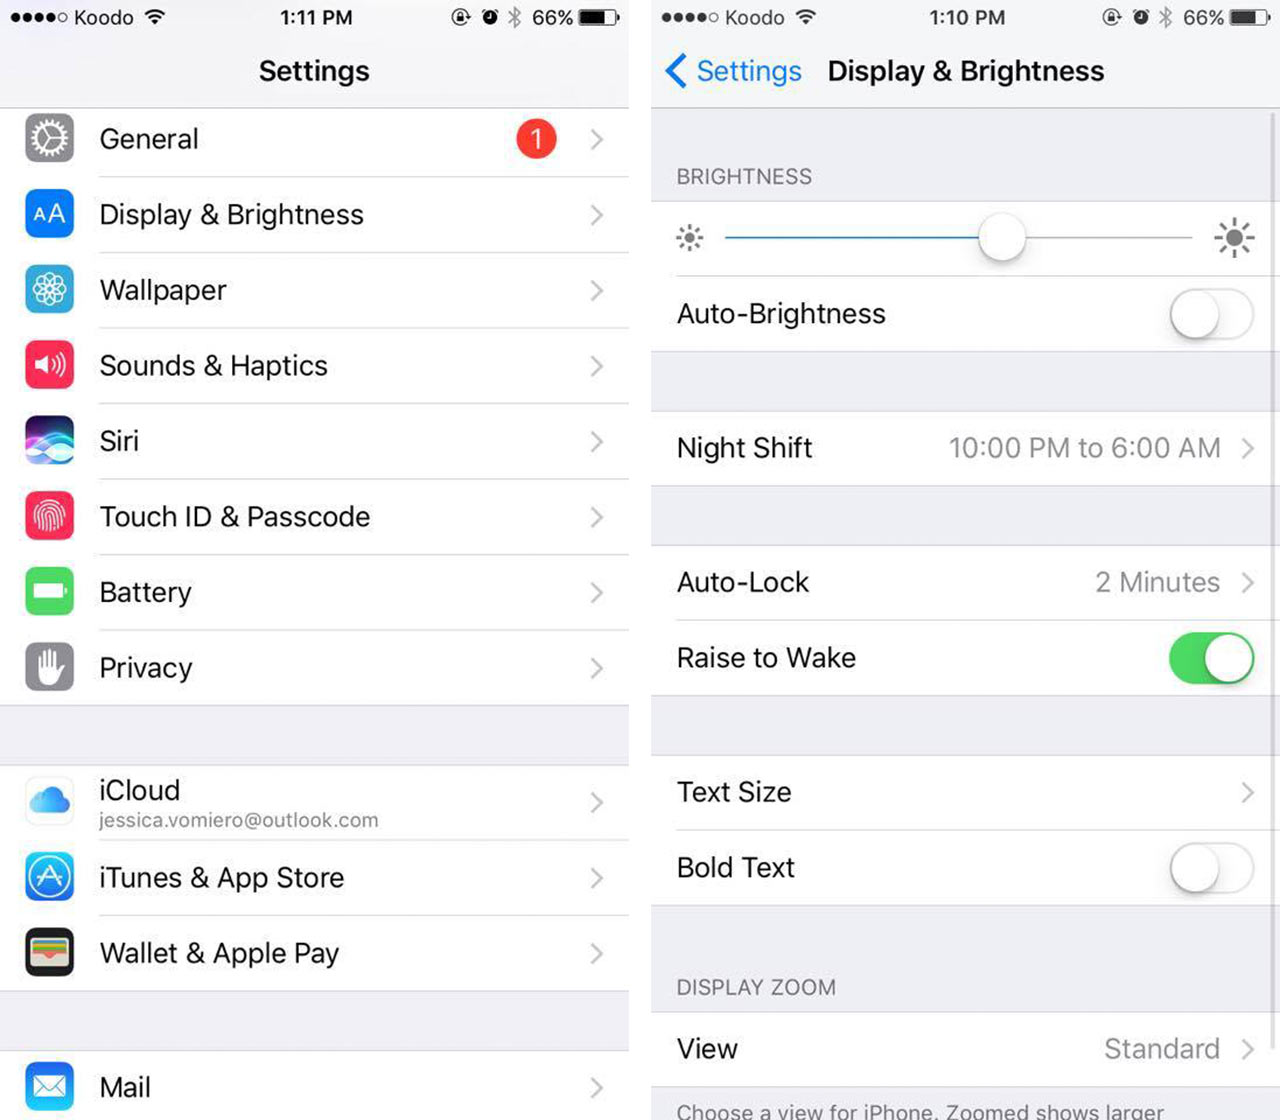 iPhone Settings Screenshots